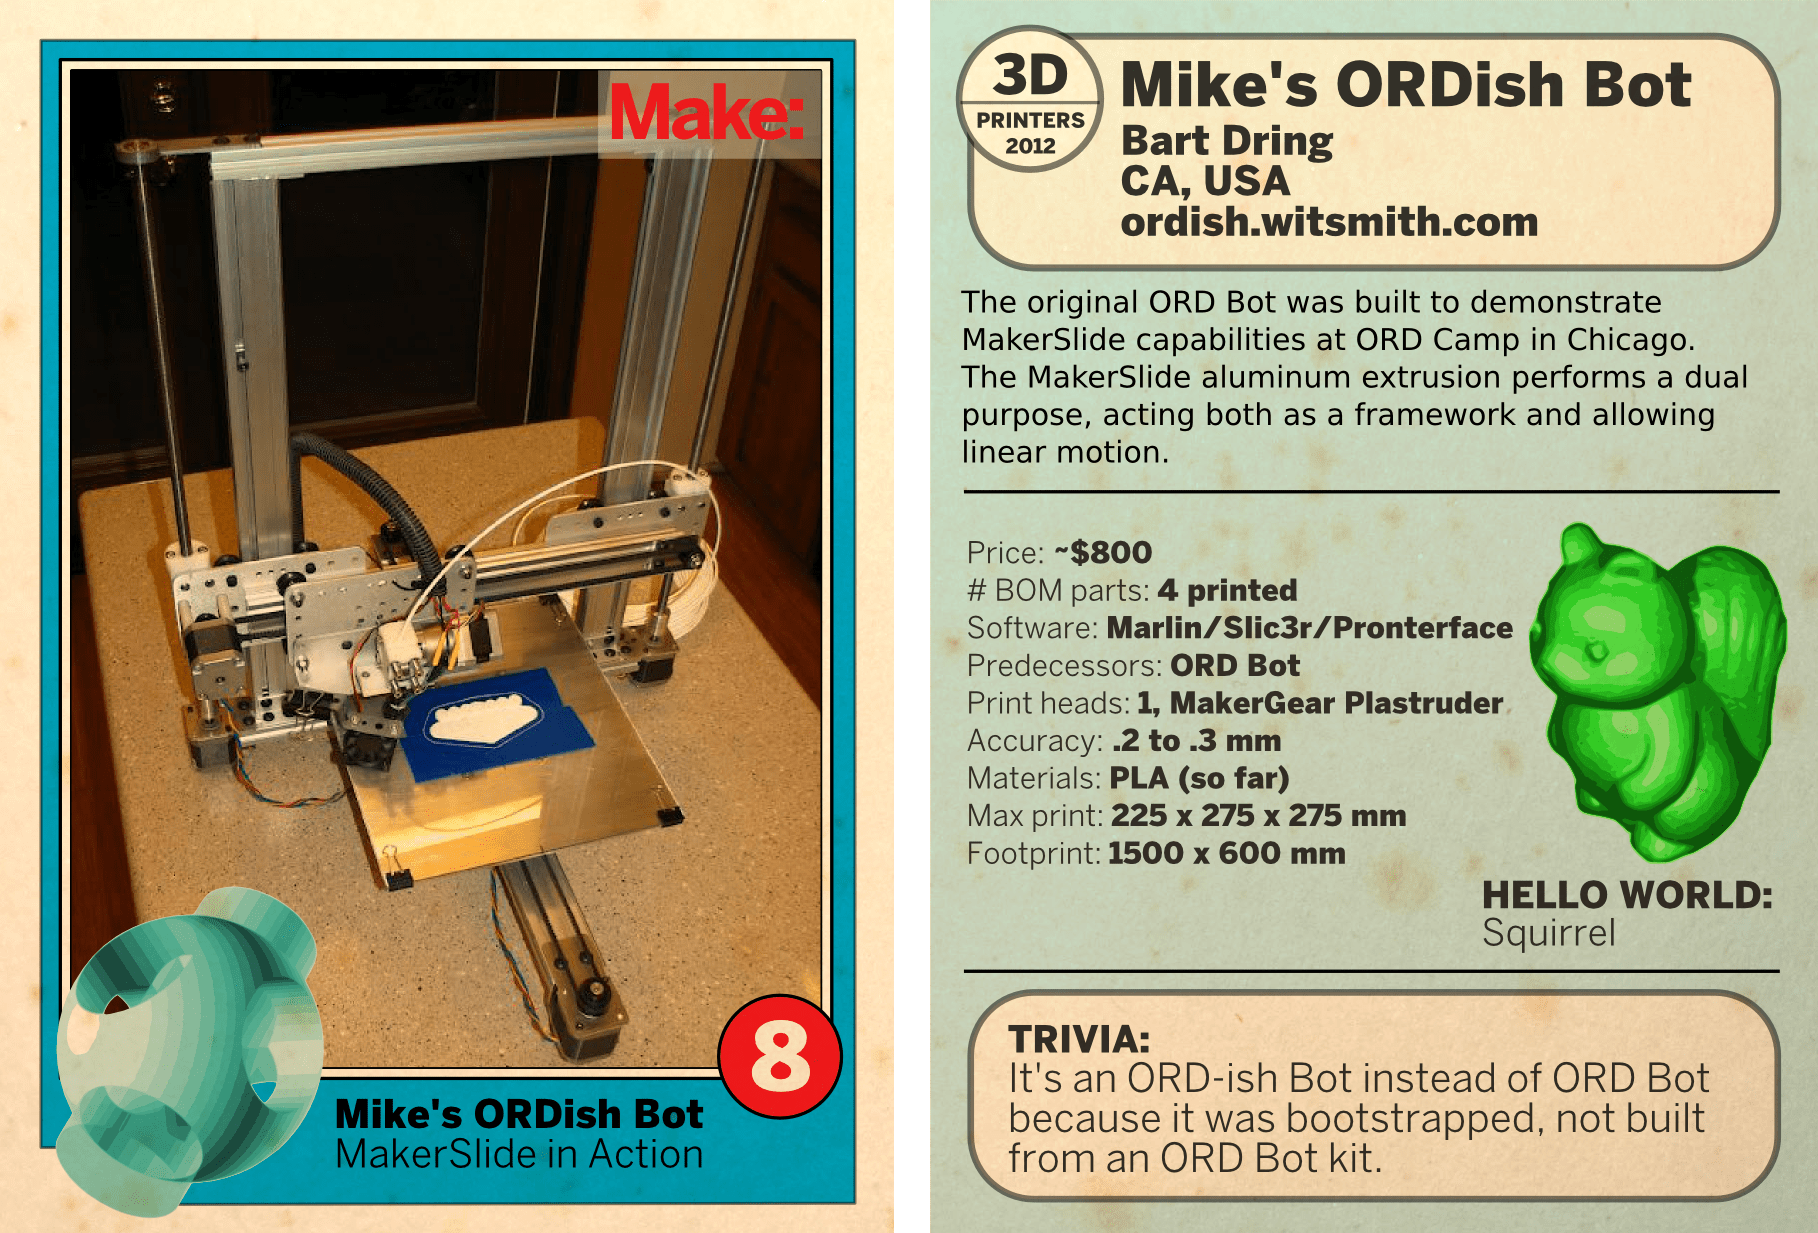 Mike's ORD-ish Bot